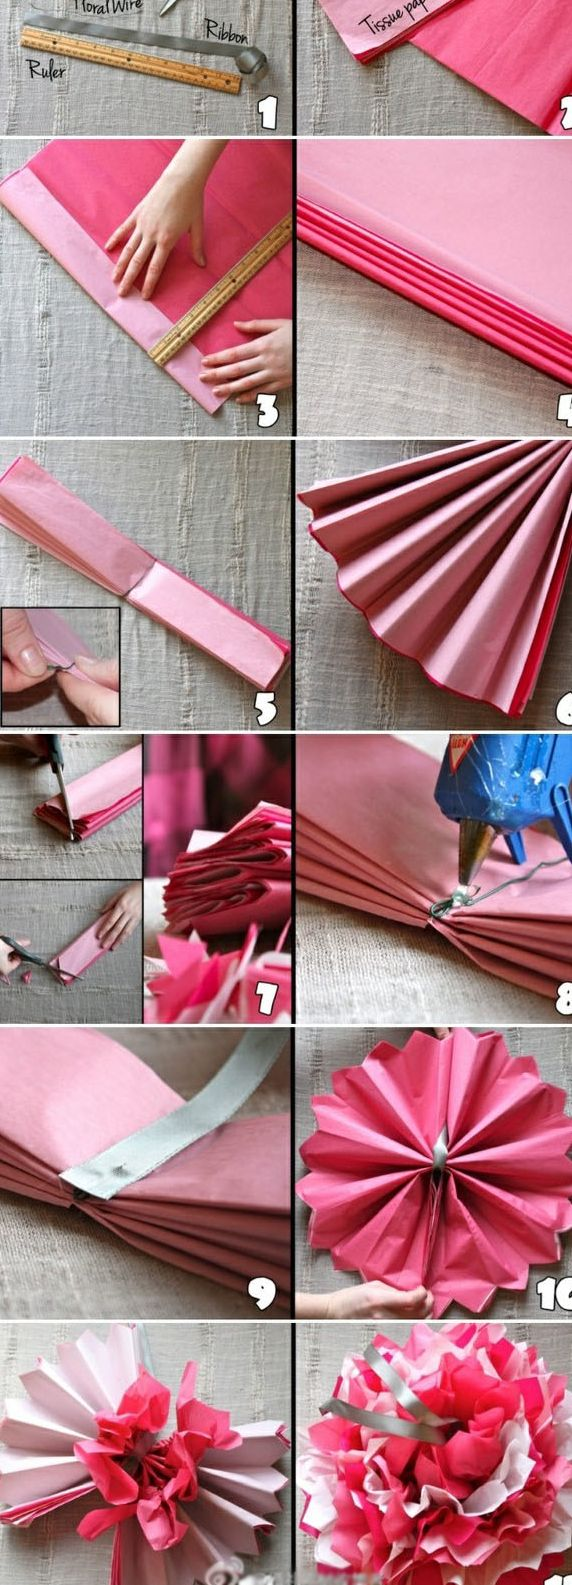 DIY pom poms diy crafts home made easy crafts craft idea crafts ideas diy ideas diy crafts diy idea do it yourself diy projects diy craft handmade party ideas party decorations pom poms